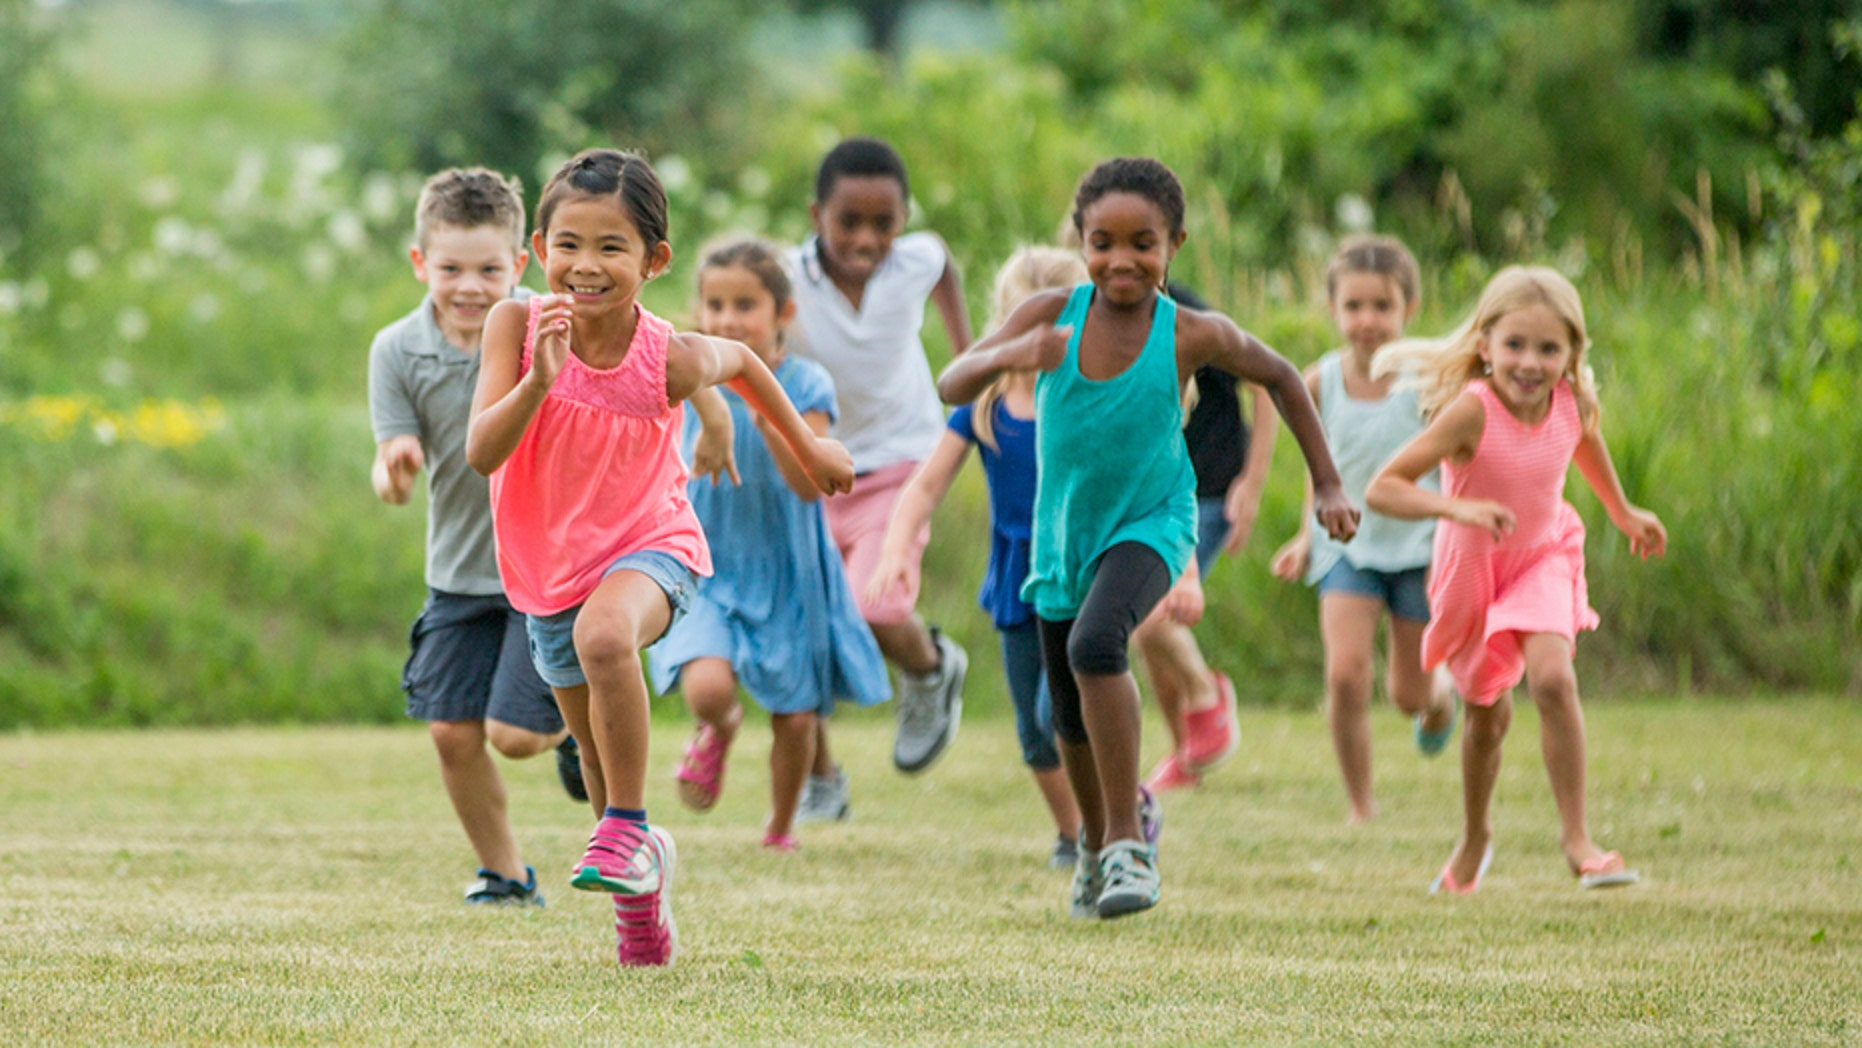 A multi-ethnic group of elementary age children are playing together outside at recess. They are chasing each other and are playing tag.